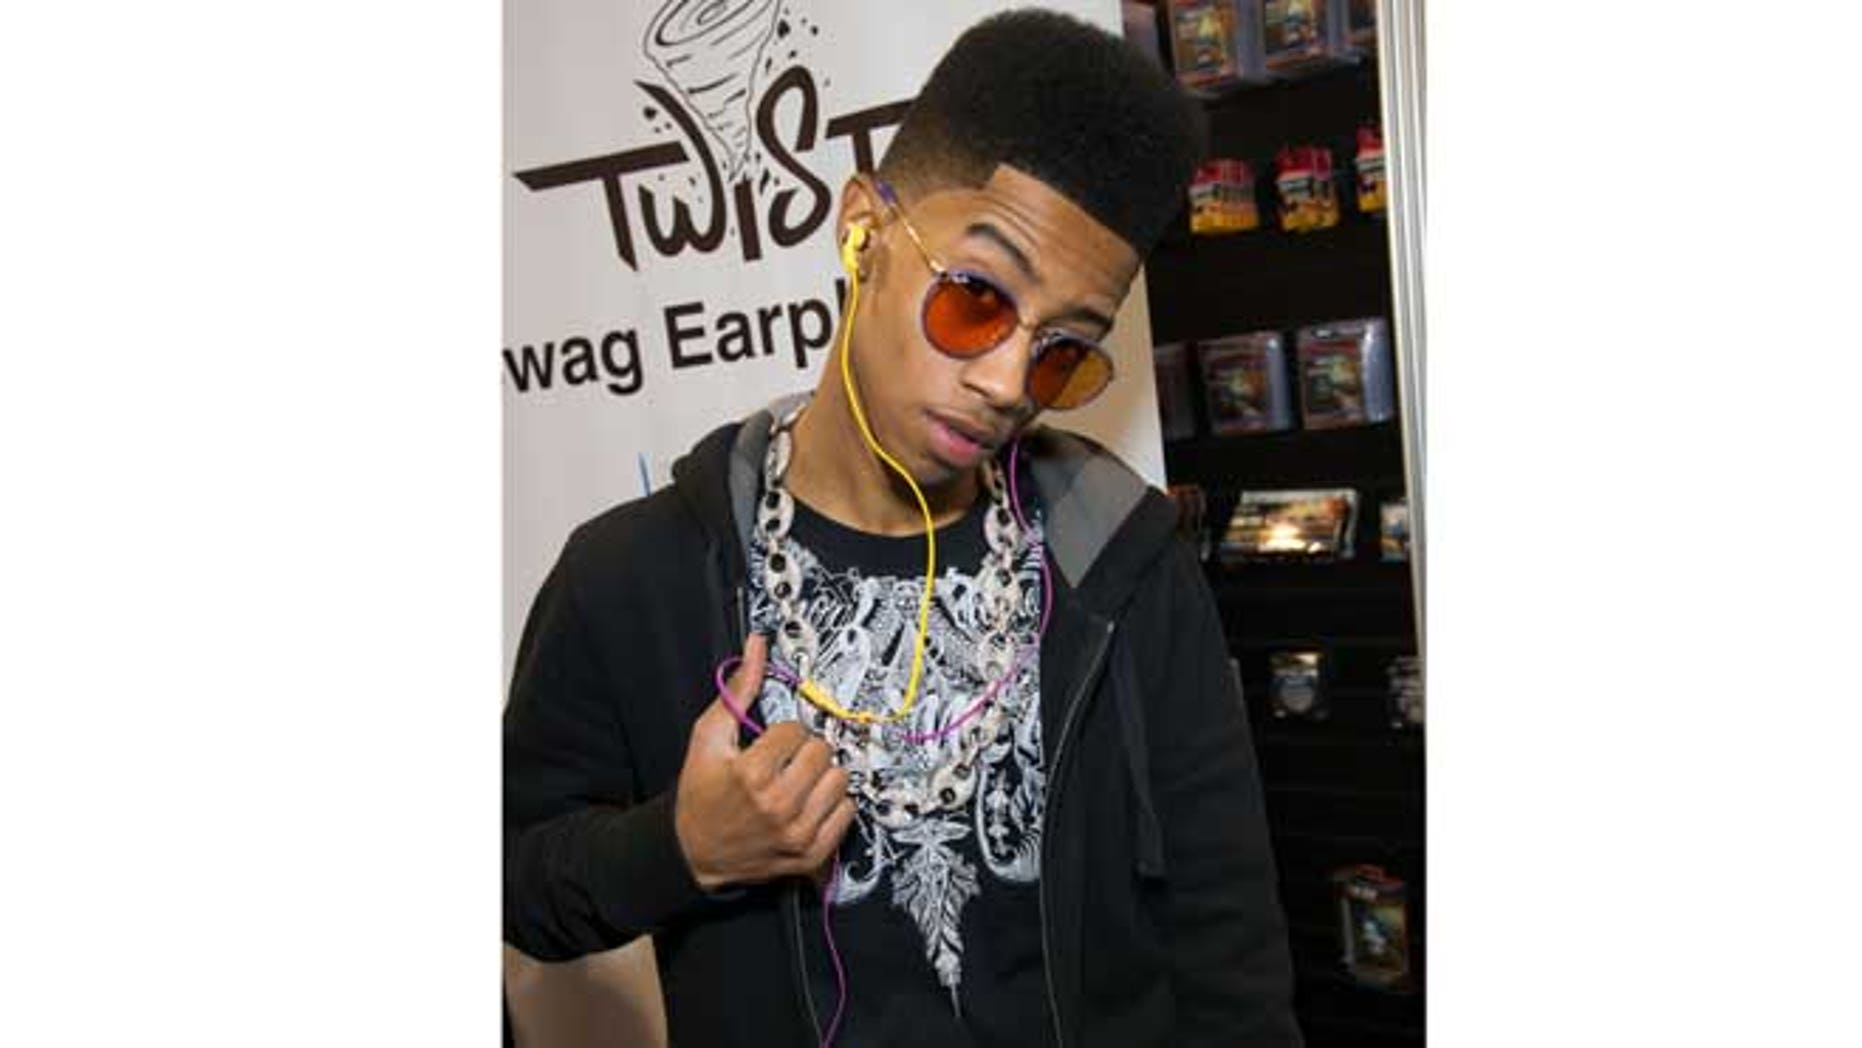 Jan. 10, 2013: In this publicity image originally released by Nikura USA, Hip hop artist, Lil Twist, born Christopher Moore, debuts his new headphone collection at International CES 2013 in Las Vegas, Nev.